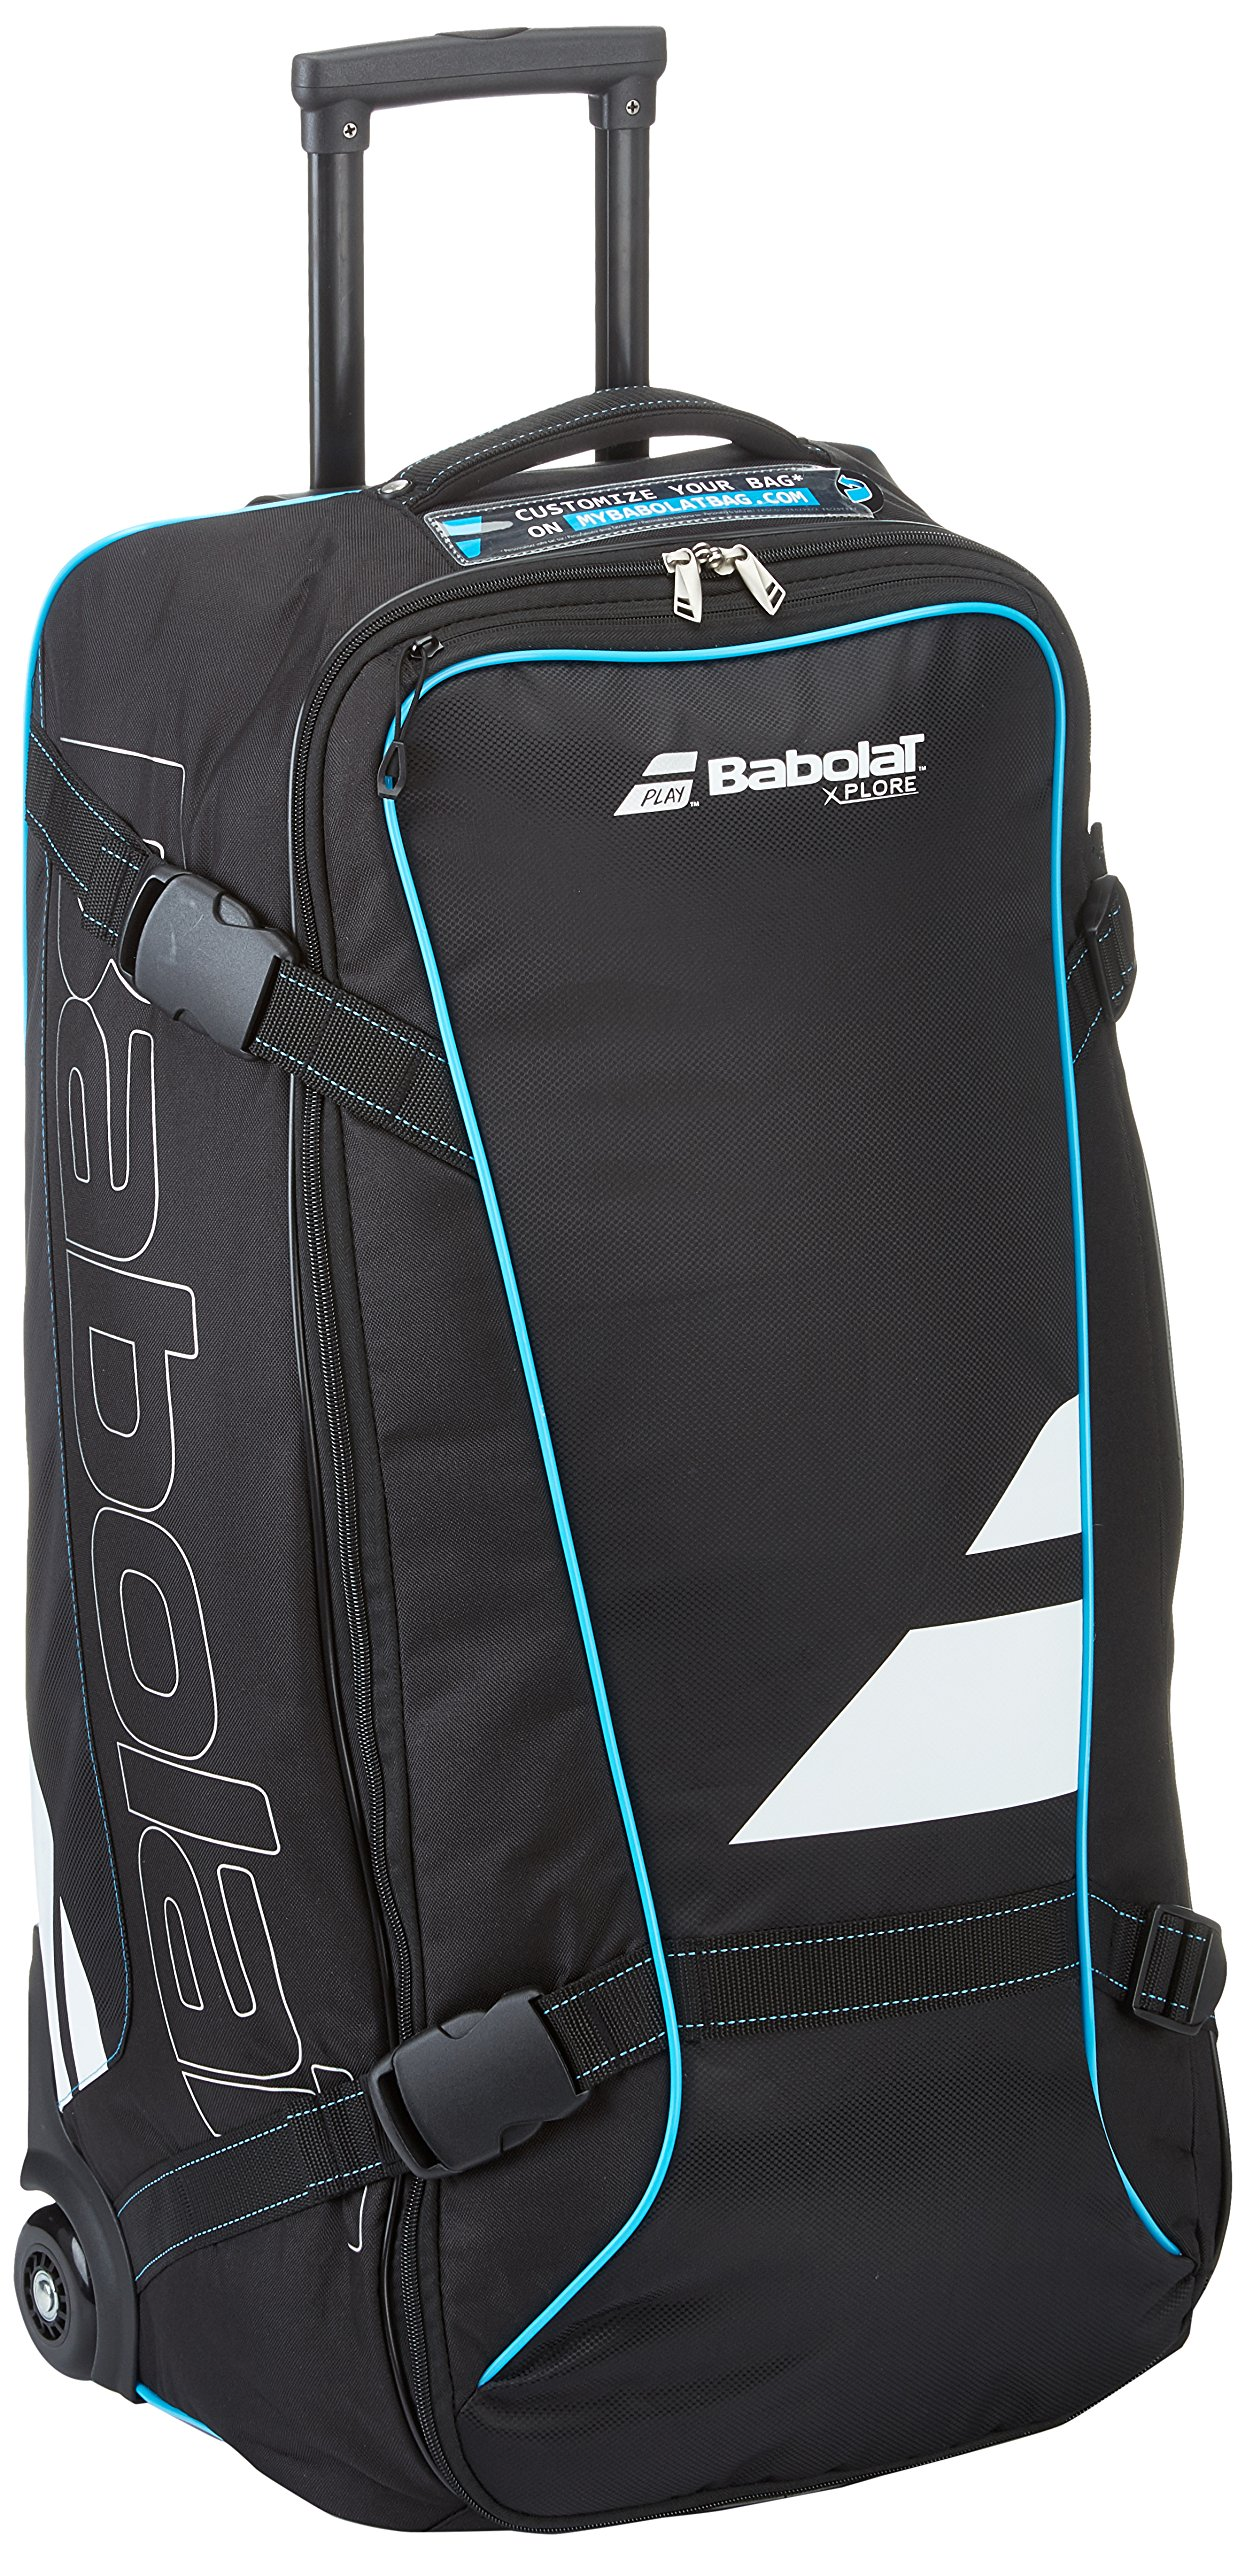 Babolat Xplore Travel Bag